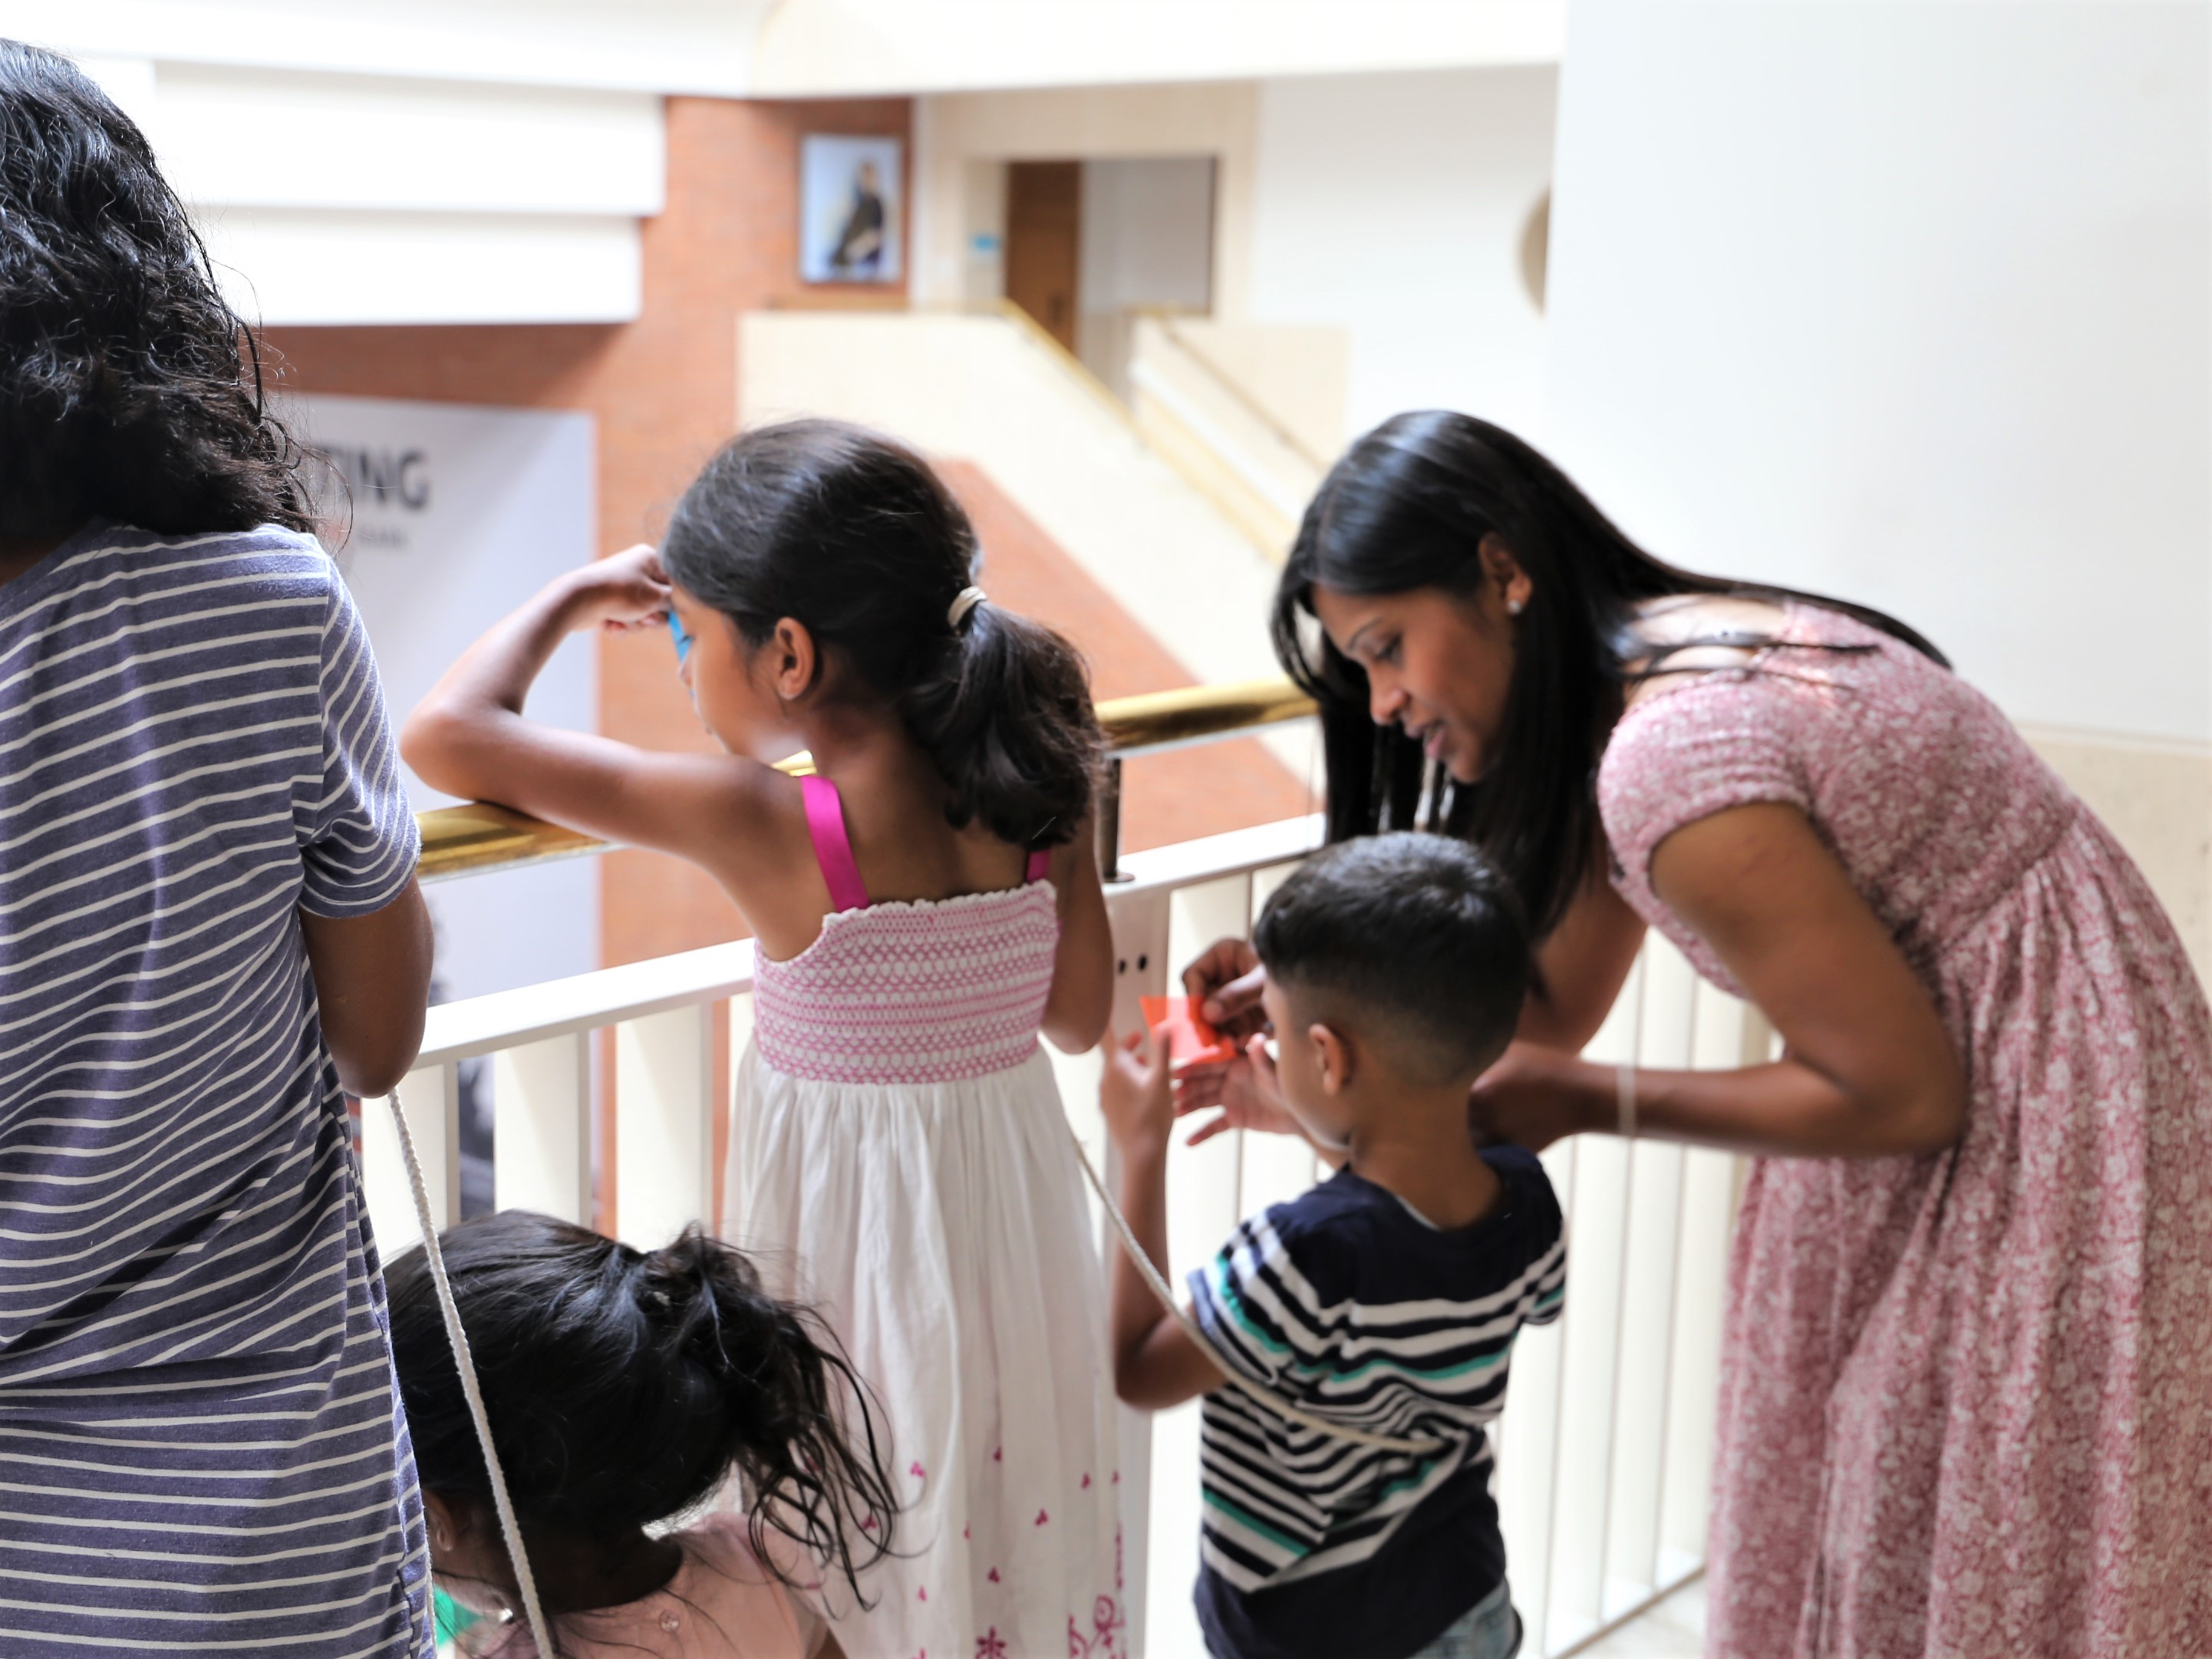 A family look over a balcony at the British Library